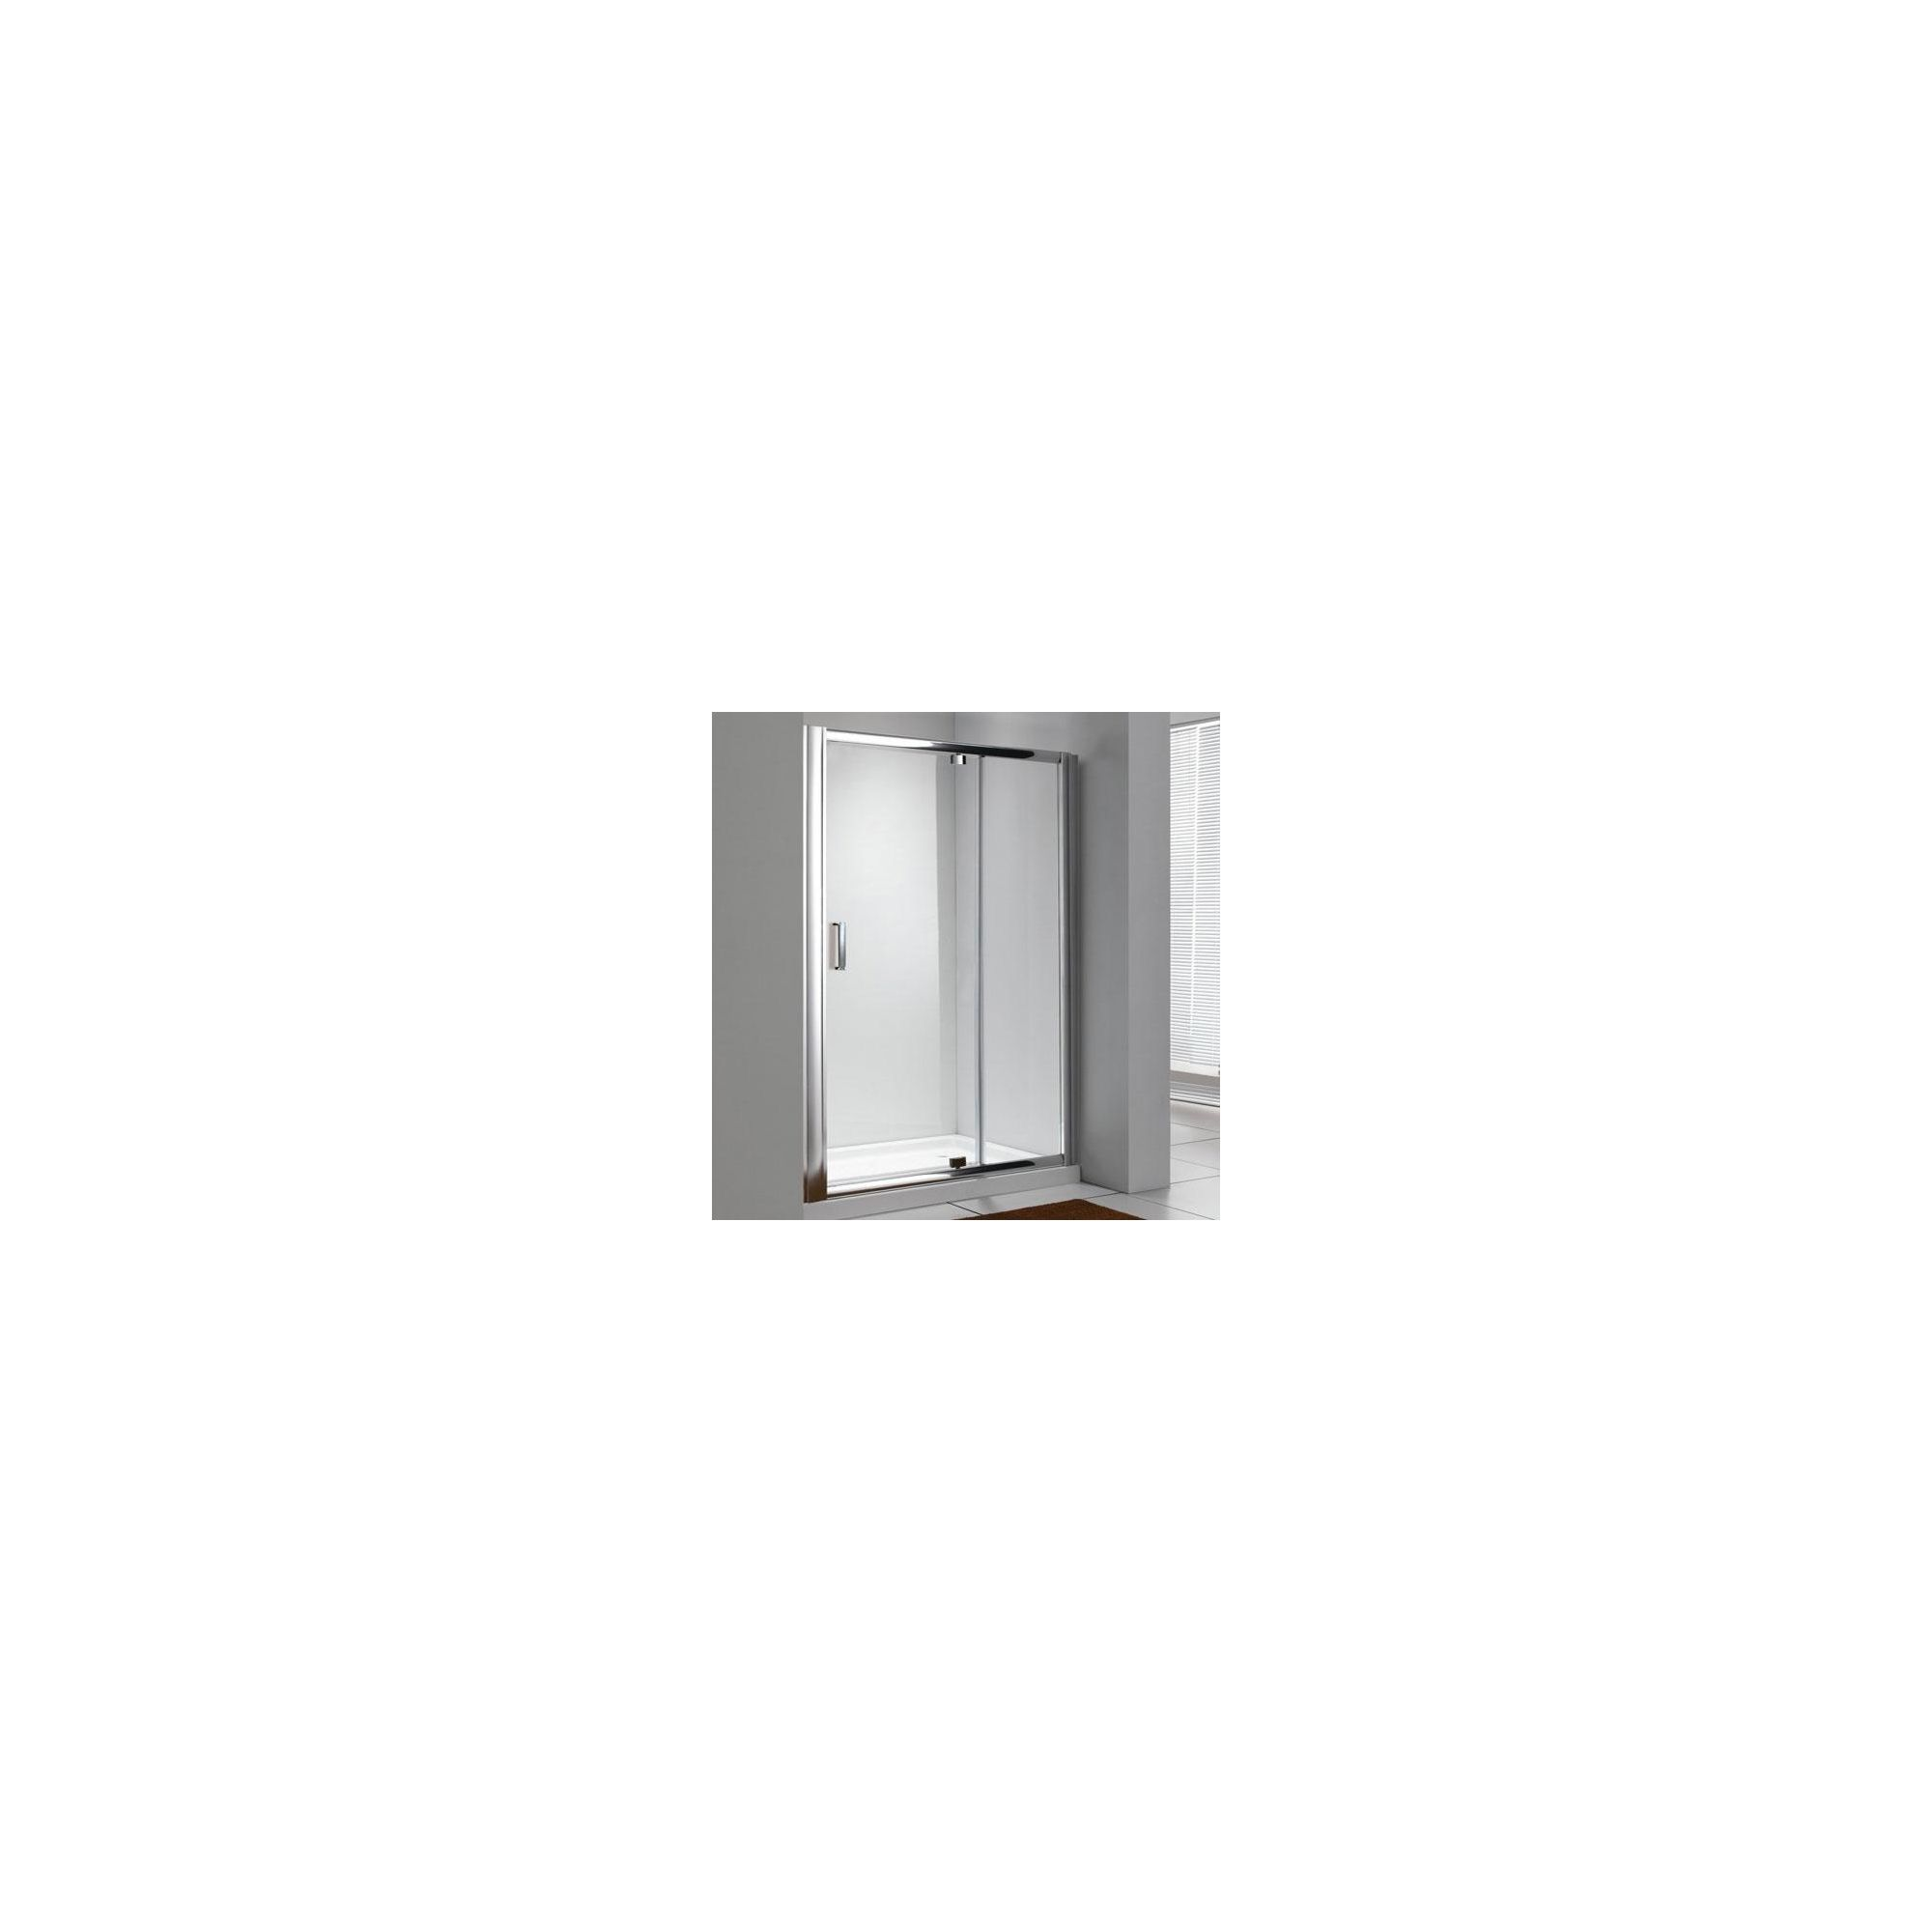 Duchy Style Pivot Door Shower Enclosure, 1100mm x 800mm, 6mm Glass, Low Profile Tray at Tesco Direct